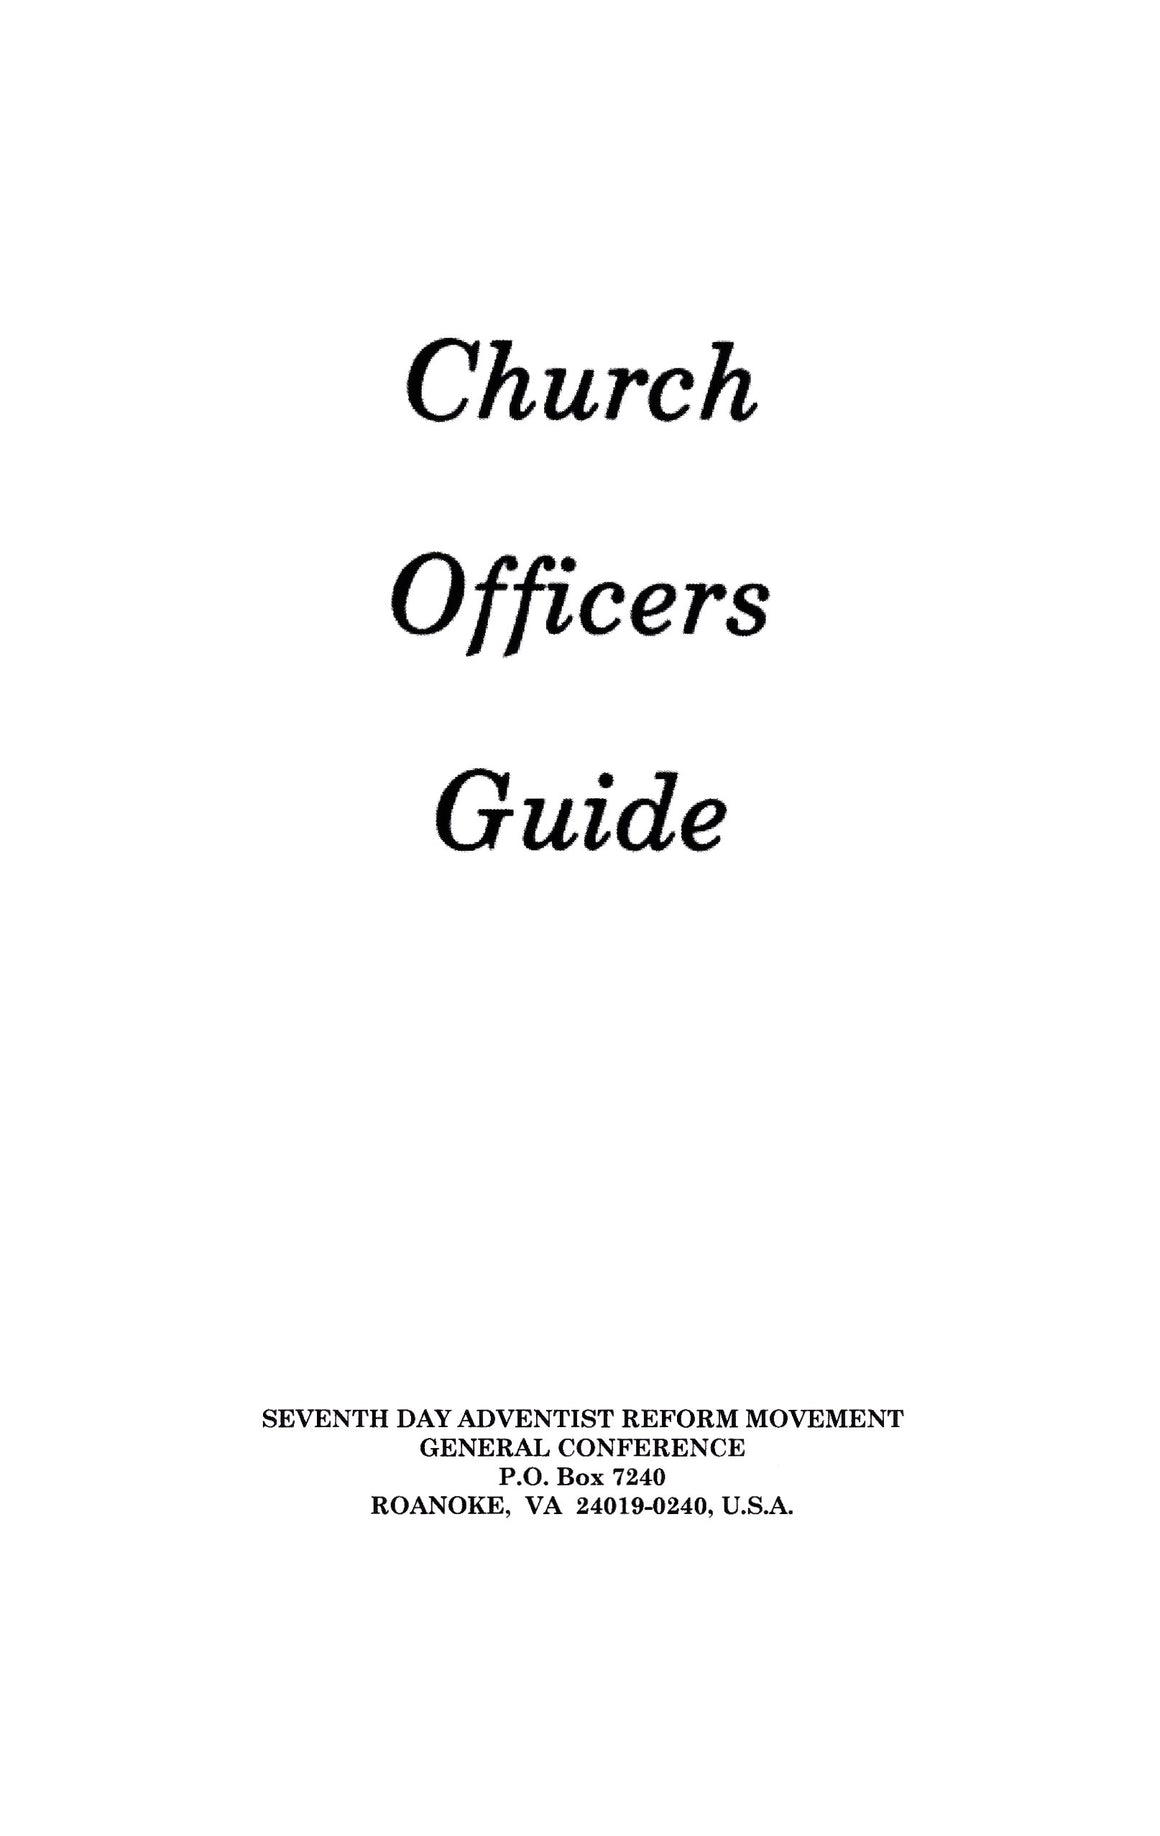 Church Officer's Guide